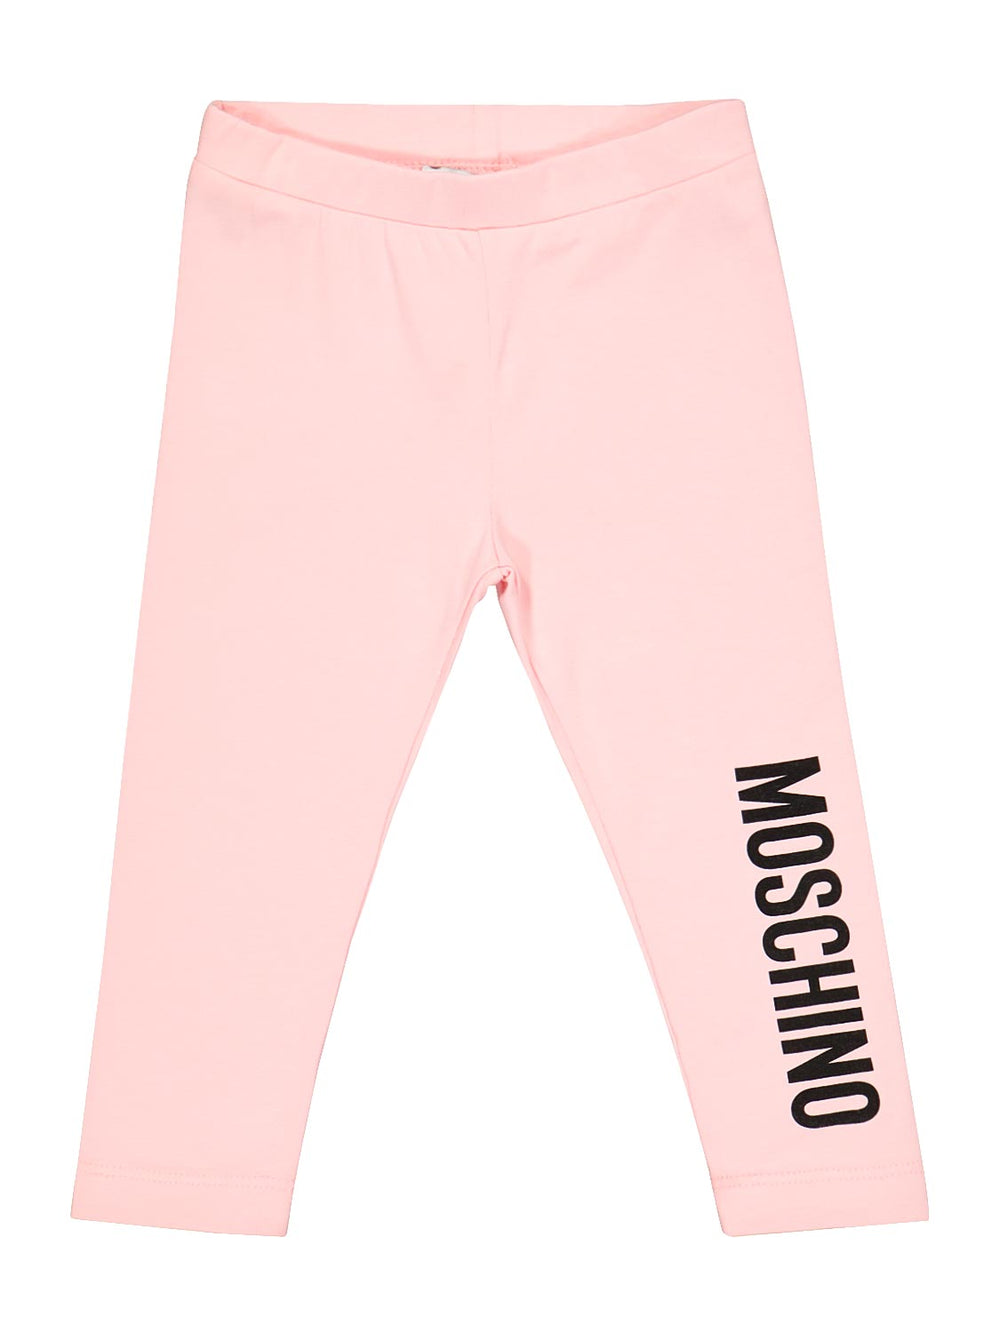 MOSCHINO Logo Print Leggings for Babies and Toddlers